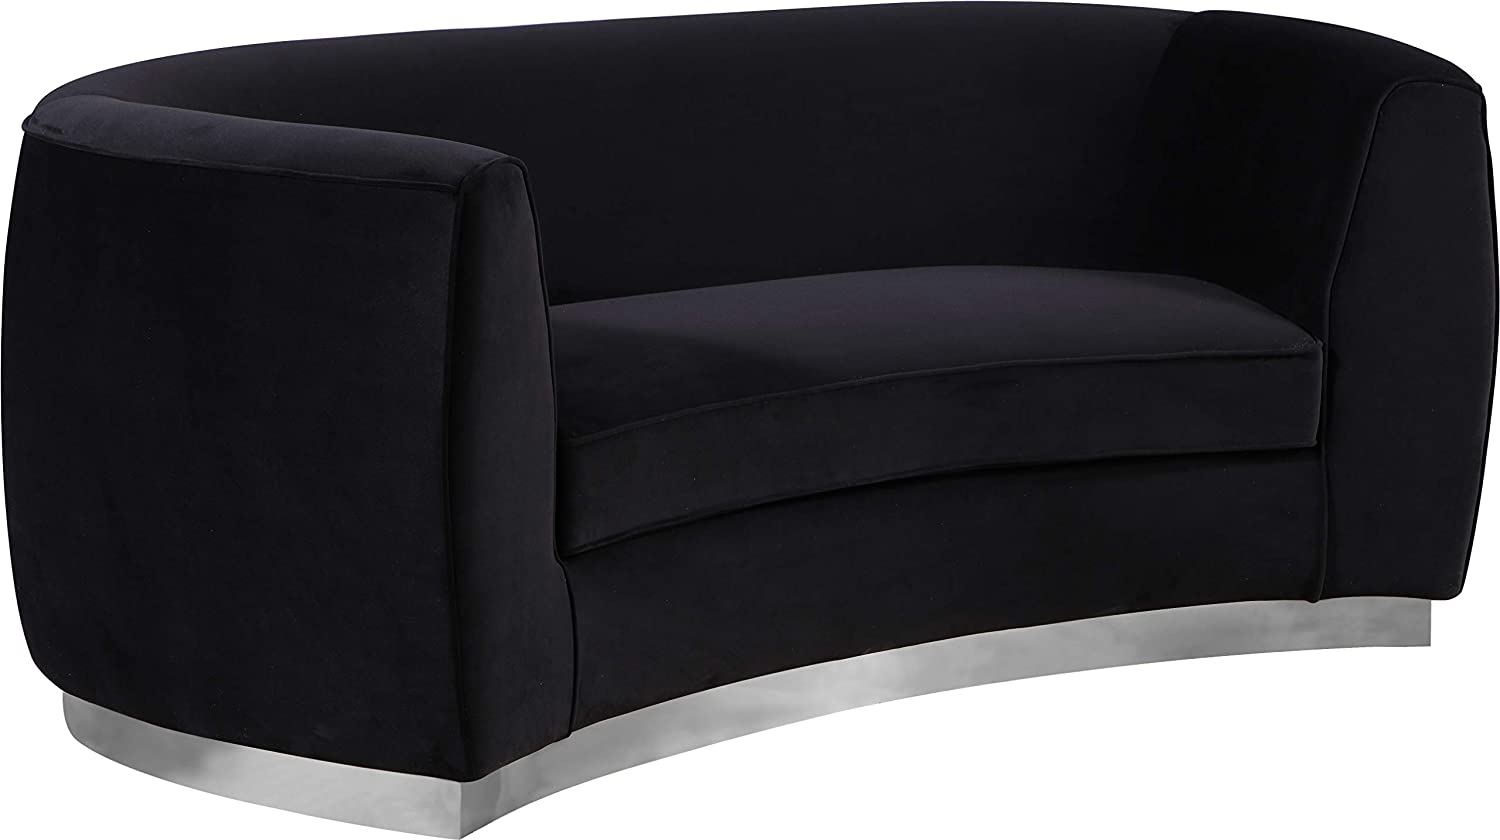 Meridian Furniture Julian Collection Modern   Contemporary Velvet Upholstered Loveseat with Stainless Steel Base in Polished Chrome Finish, Black, 70